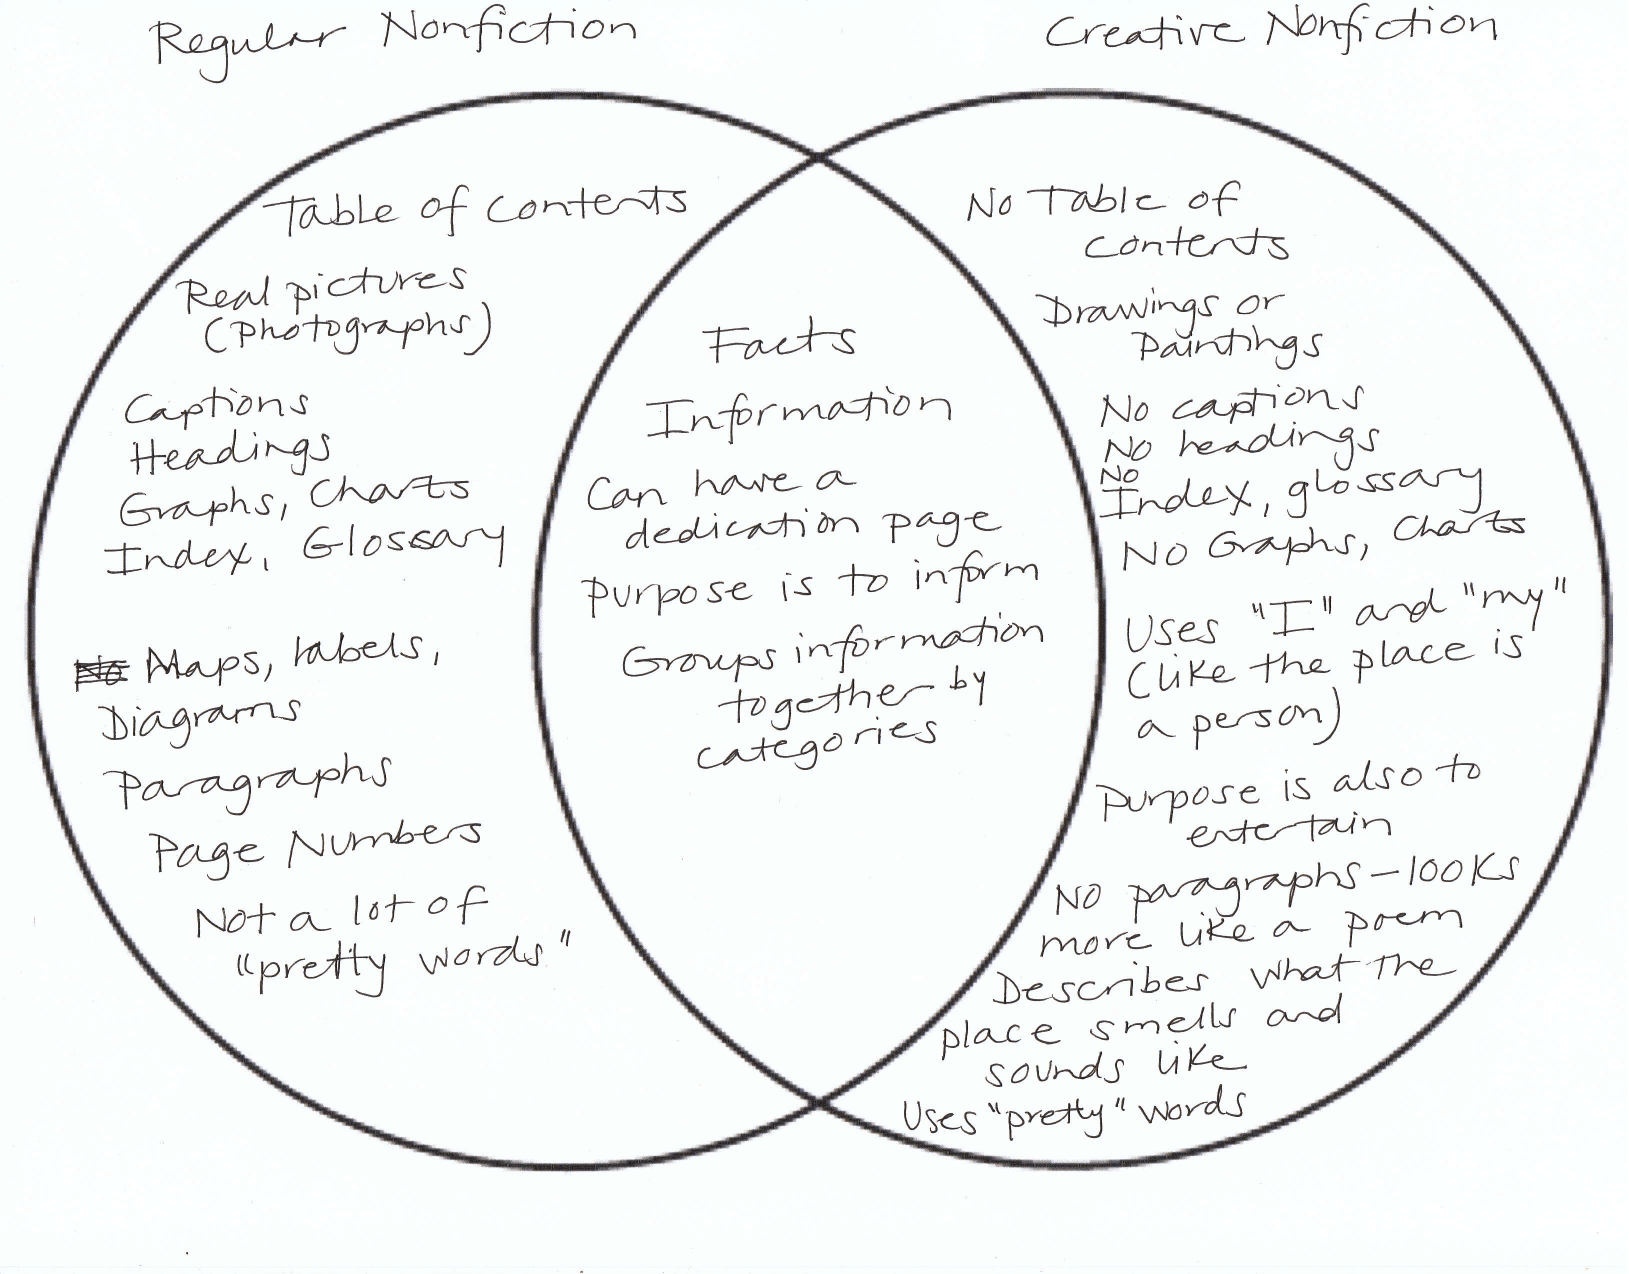 piaget vs vygotsky venn diagram shear and bending moment diagrams for beams mentor text to make a prairie sample comparing contrasting types of nonfiction